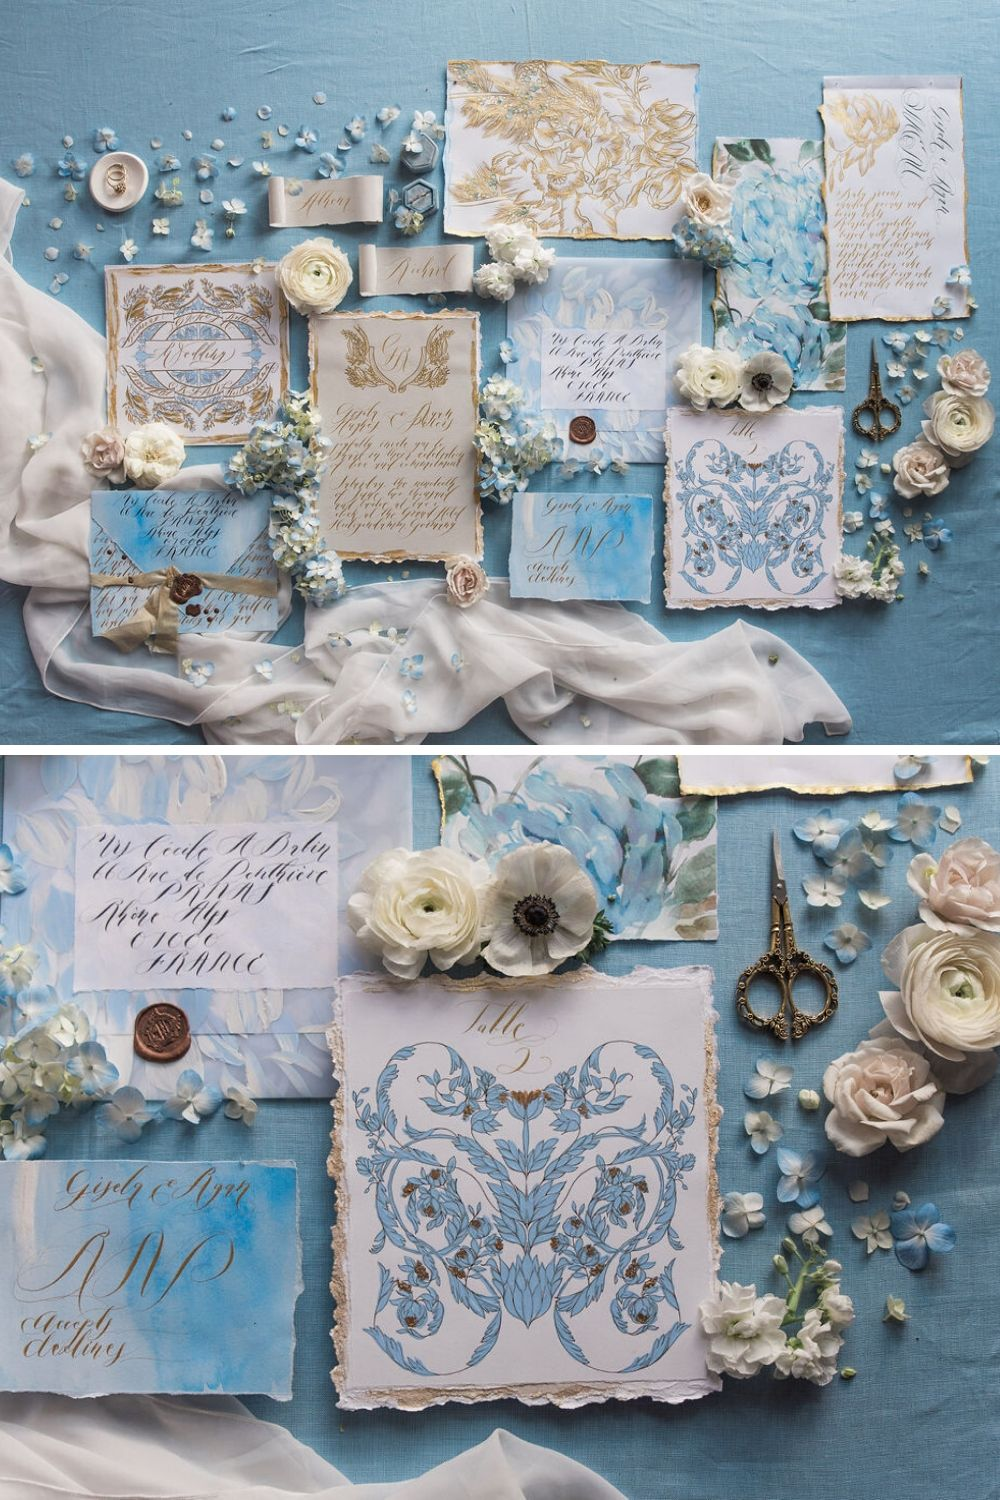 Classical and refined wedding stationery with handmade details for a refined, fine art wedding in Paris or Provence